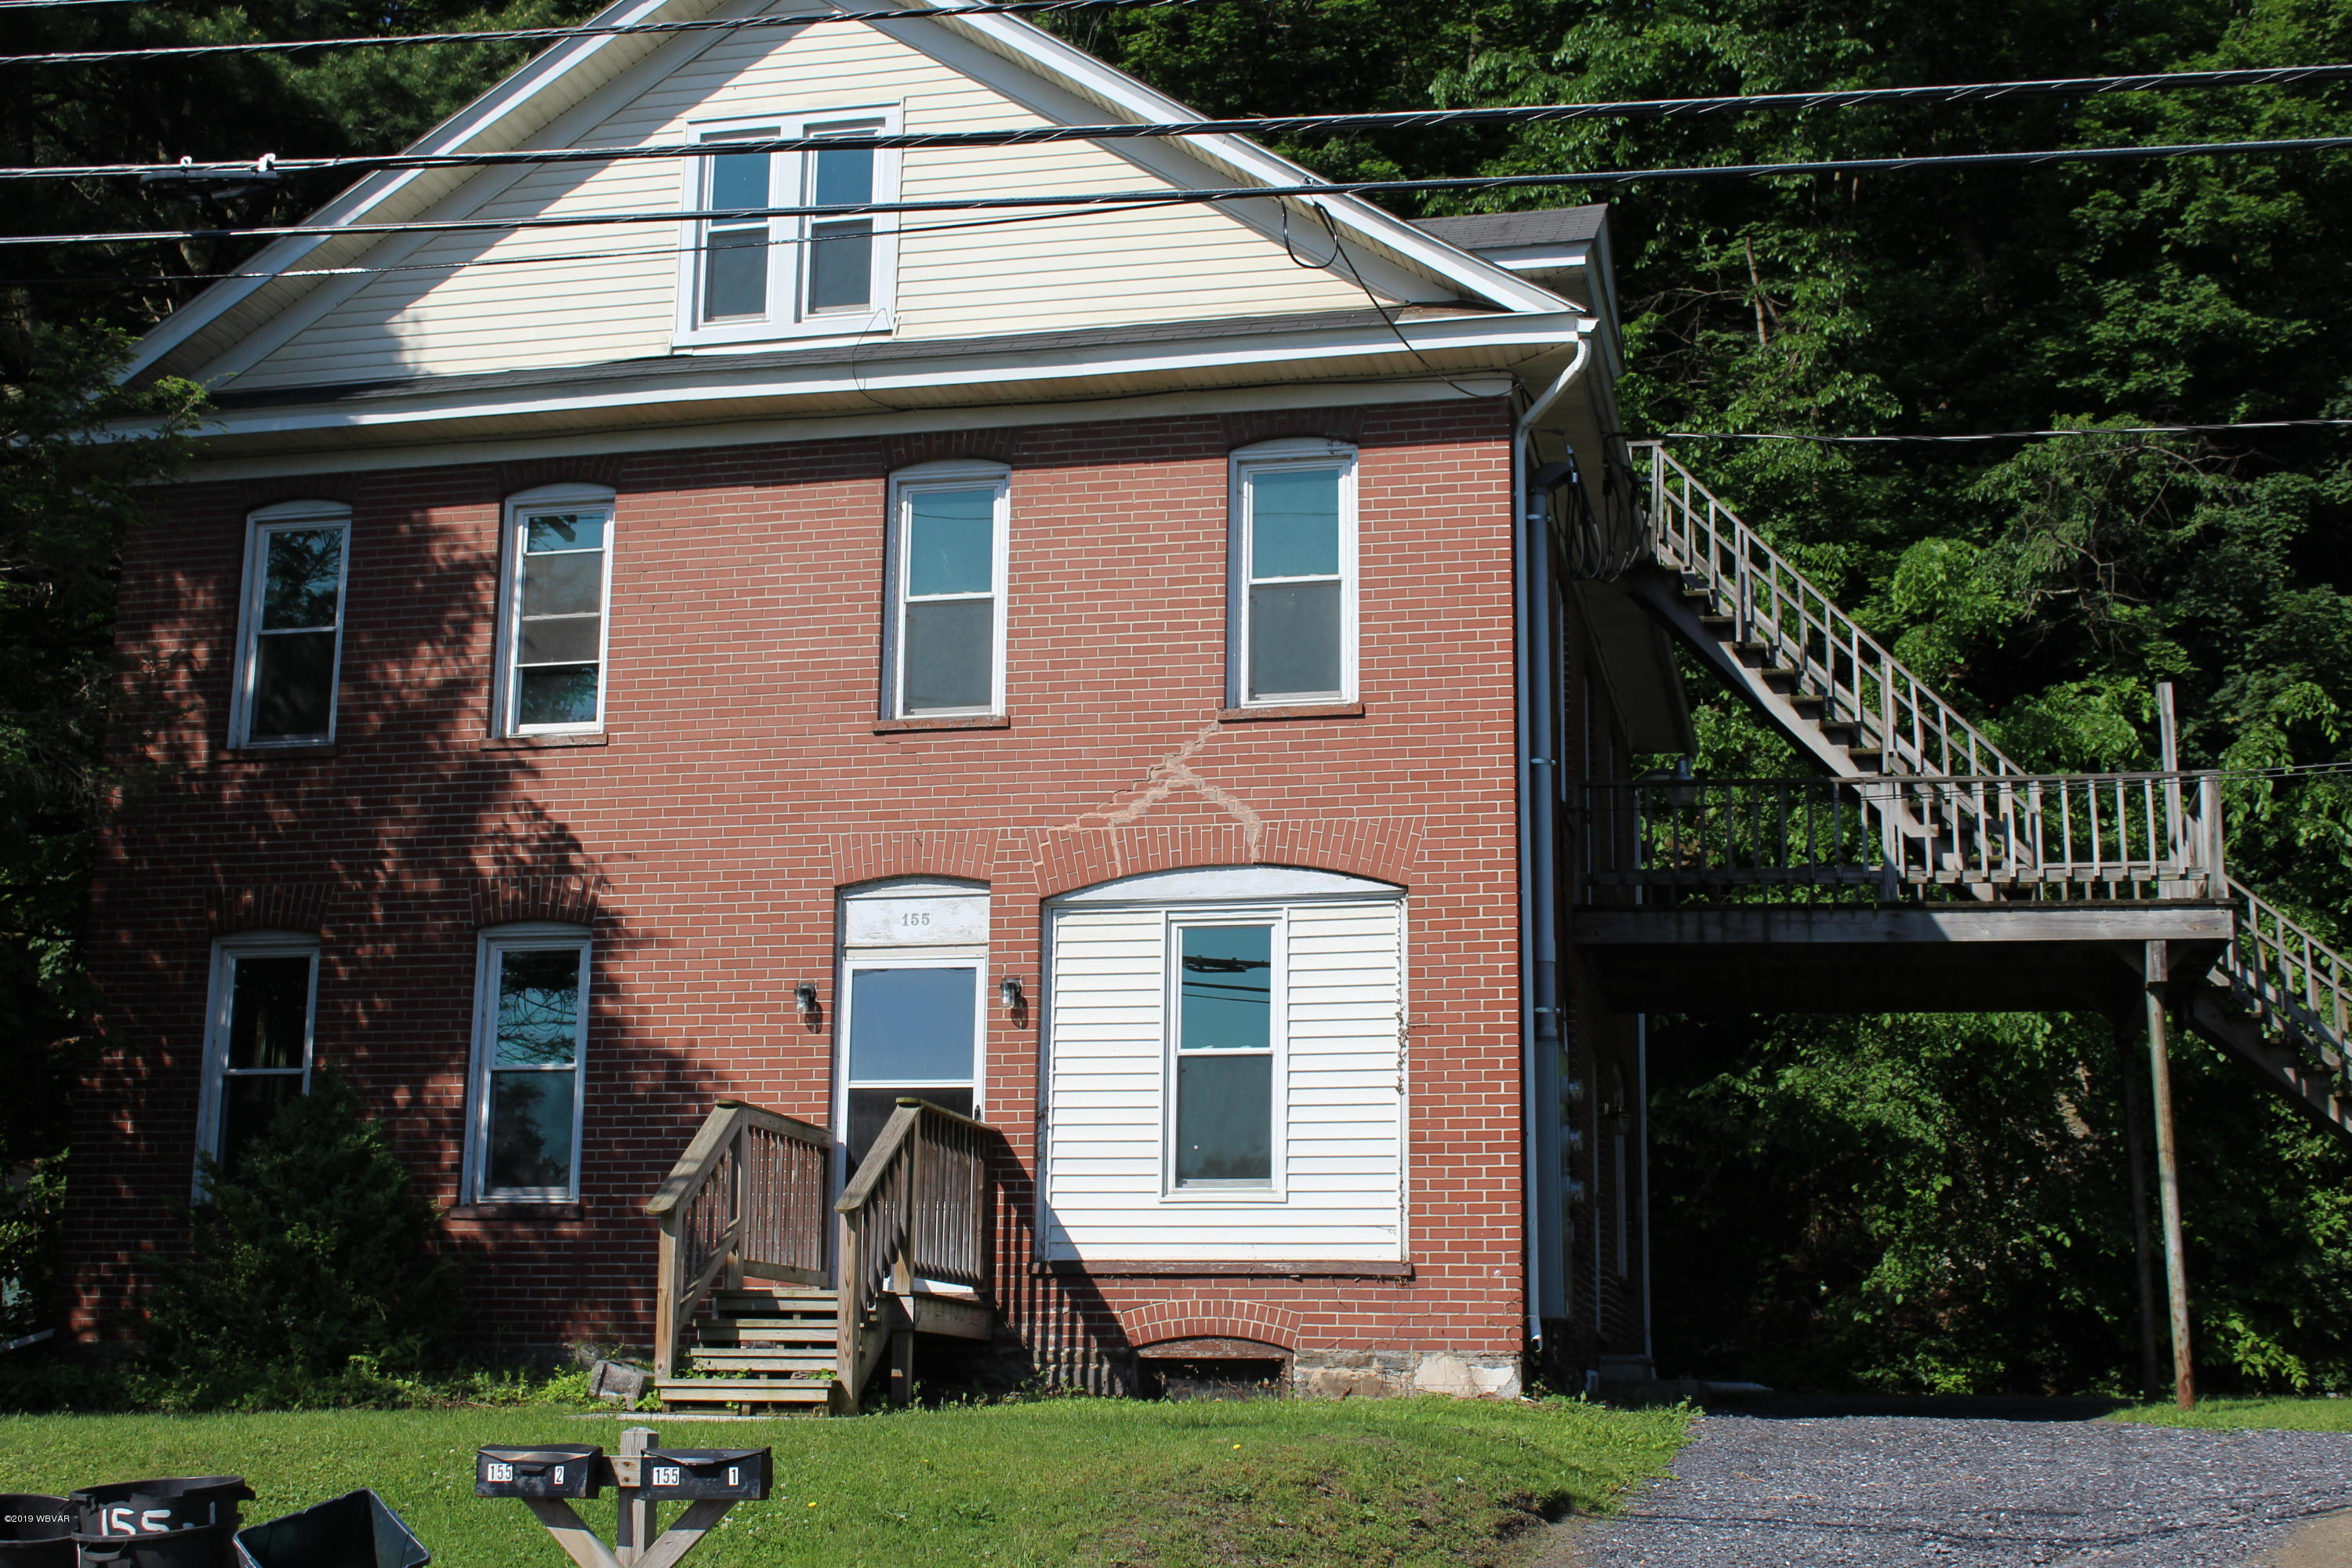 155 FAIRVIEW STREET, Lock Haven, PA 17745, ,Multi-units,For sale,FAIRVIEW,WB-87159